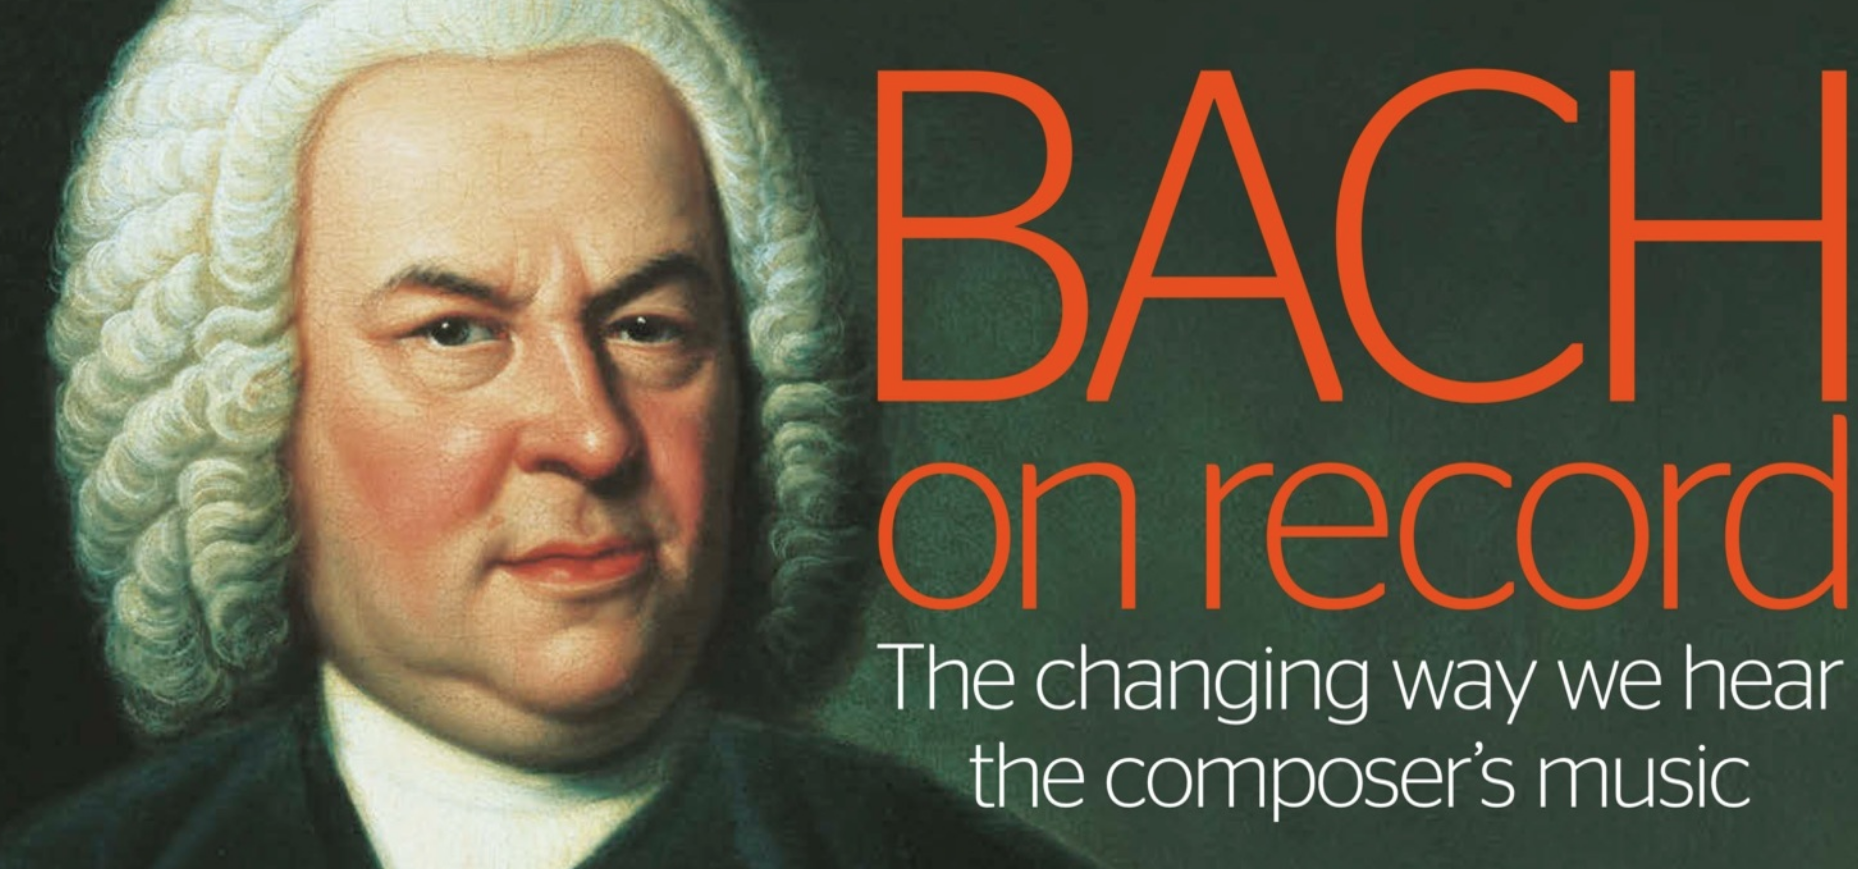 Bach on record